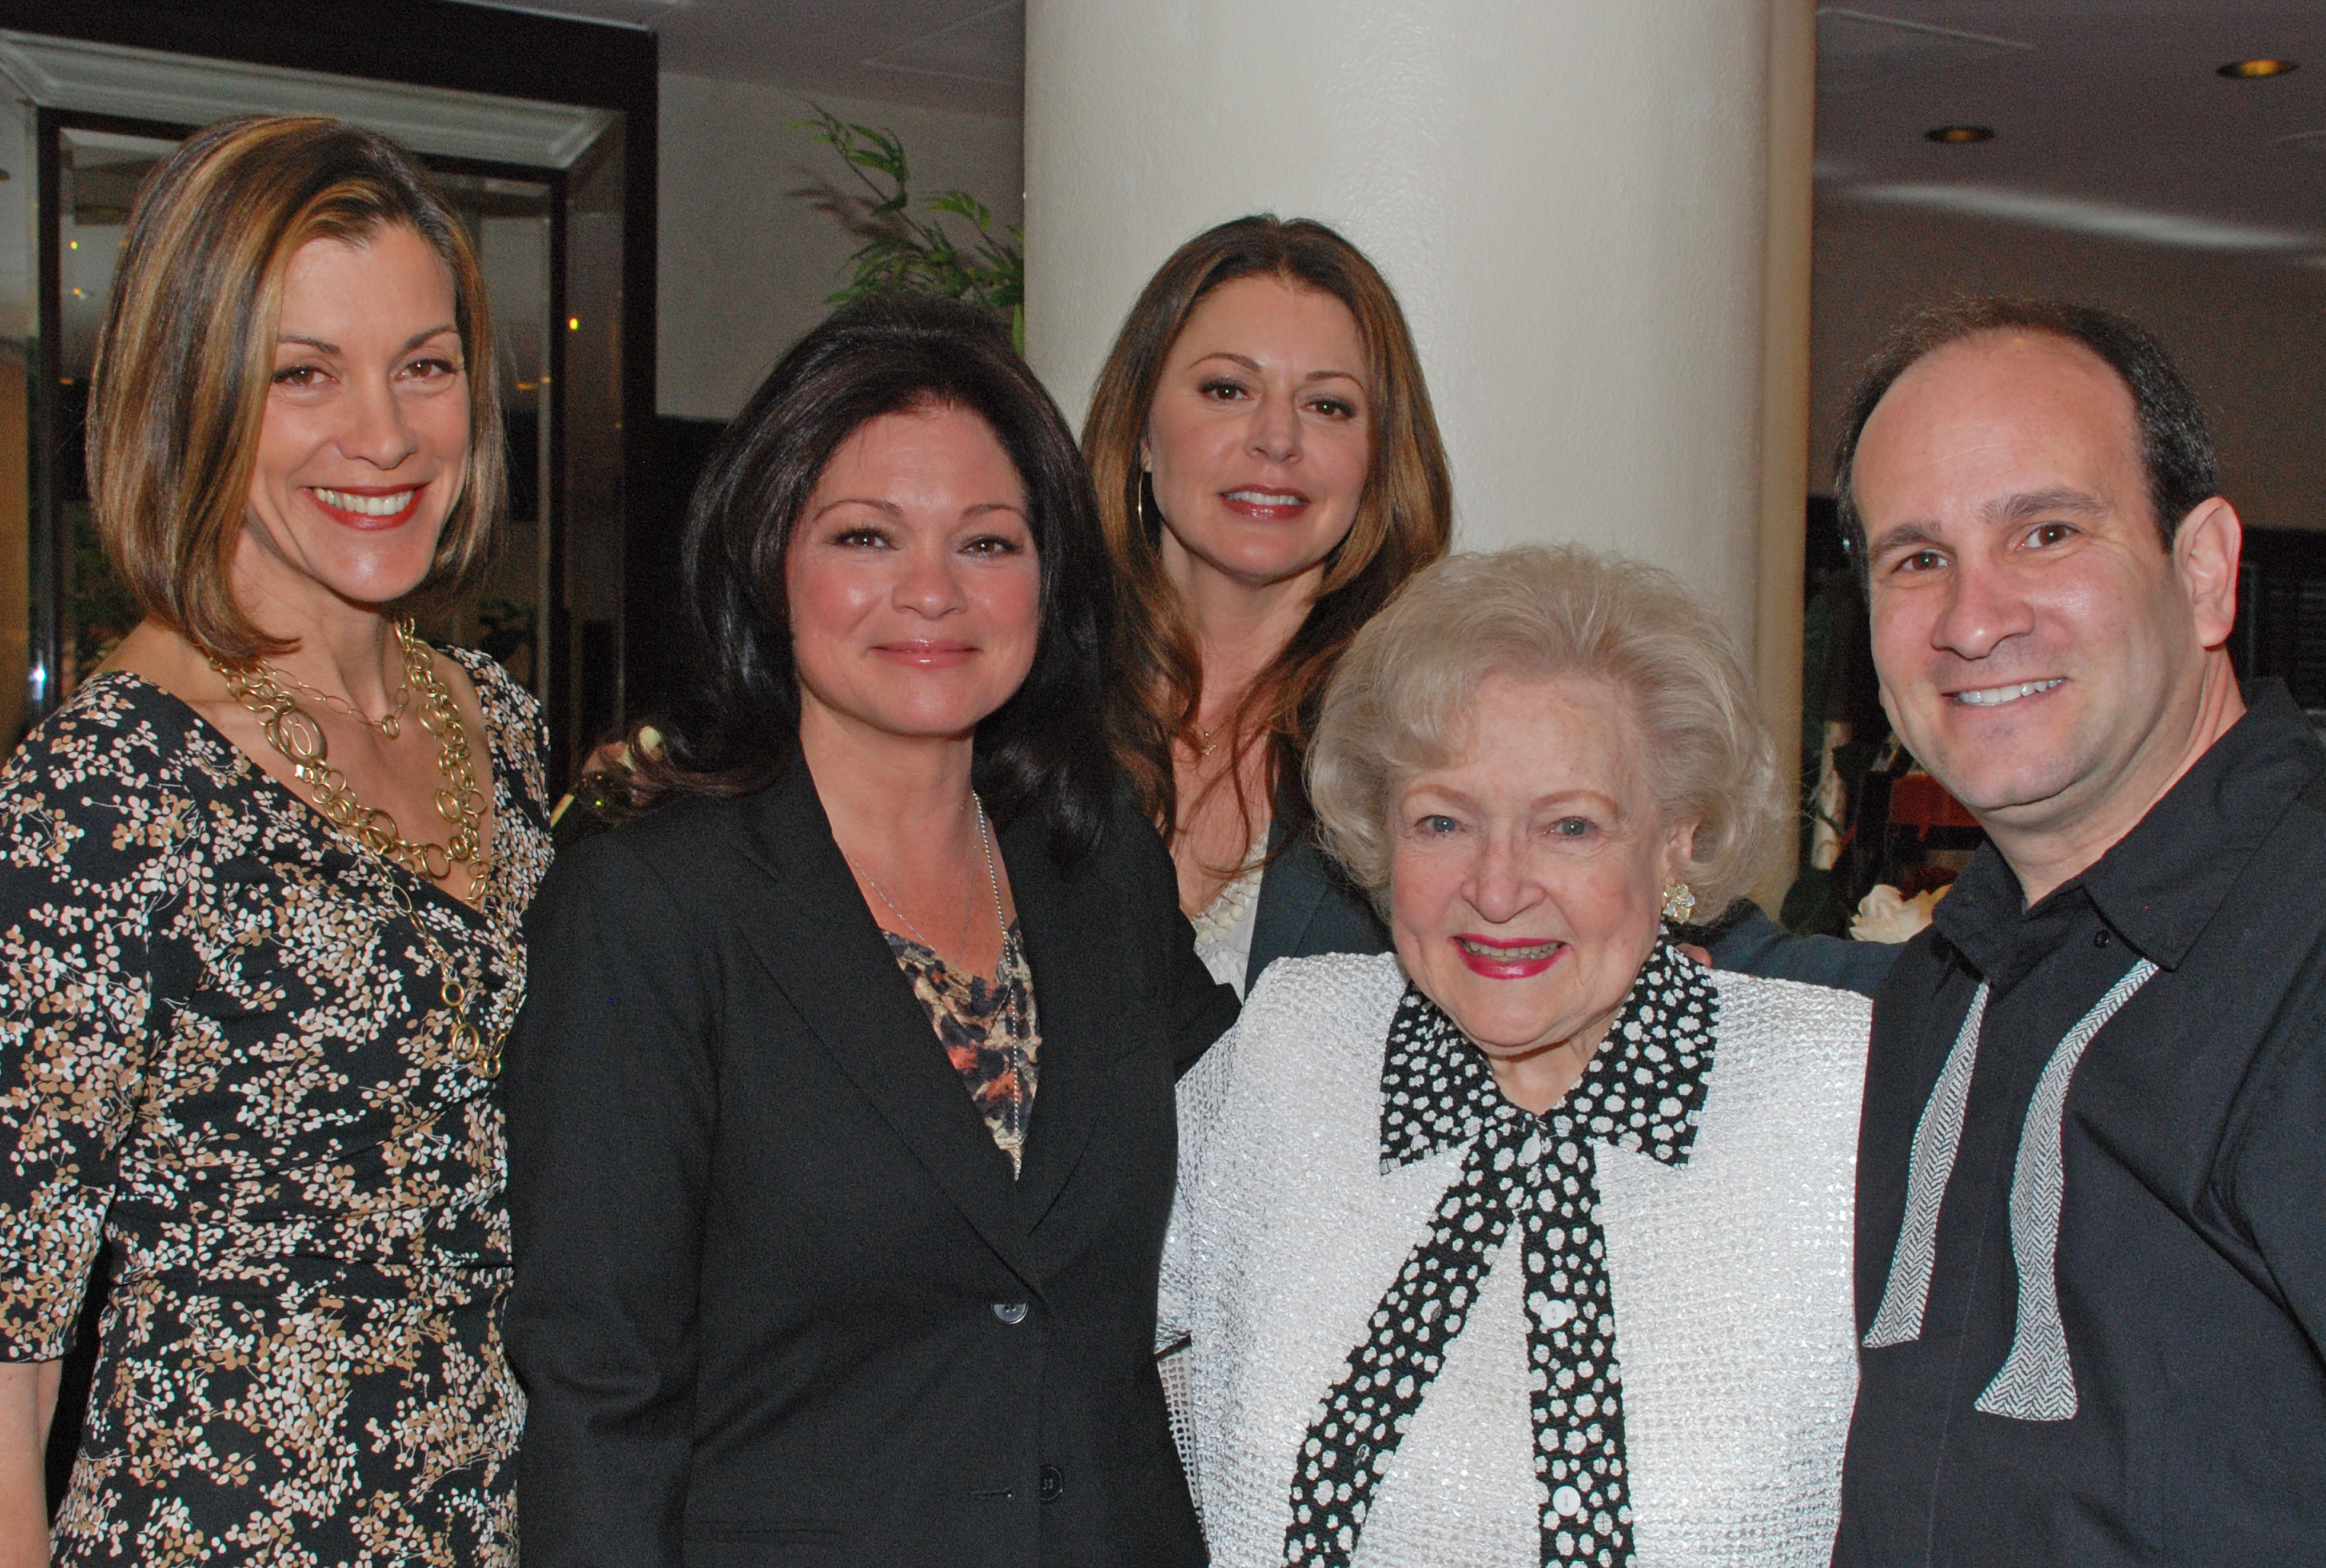 Cast of HOT IN CLEVELAND CUBE